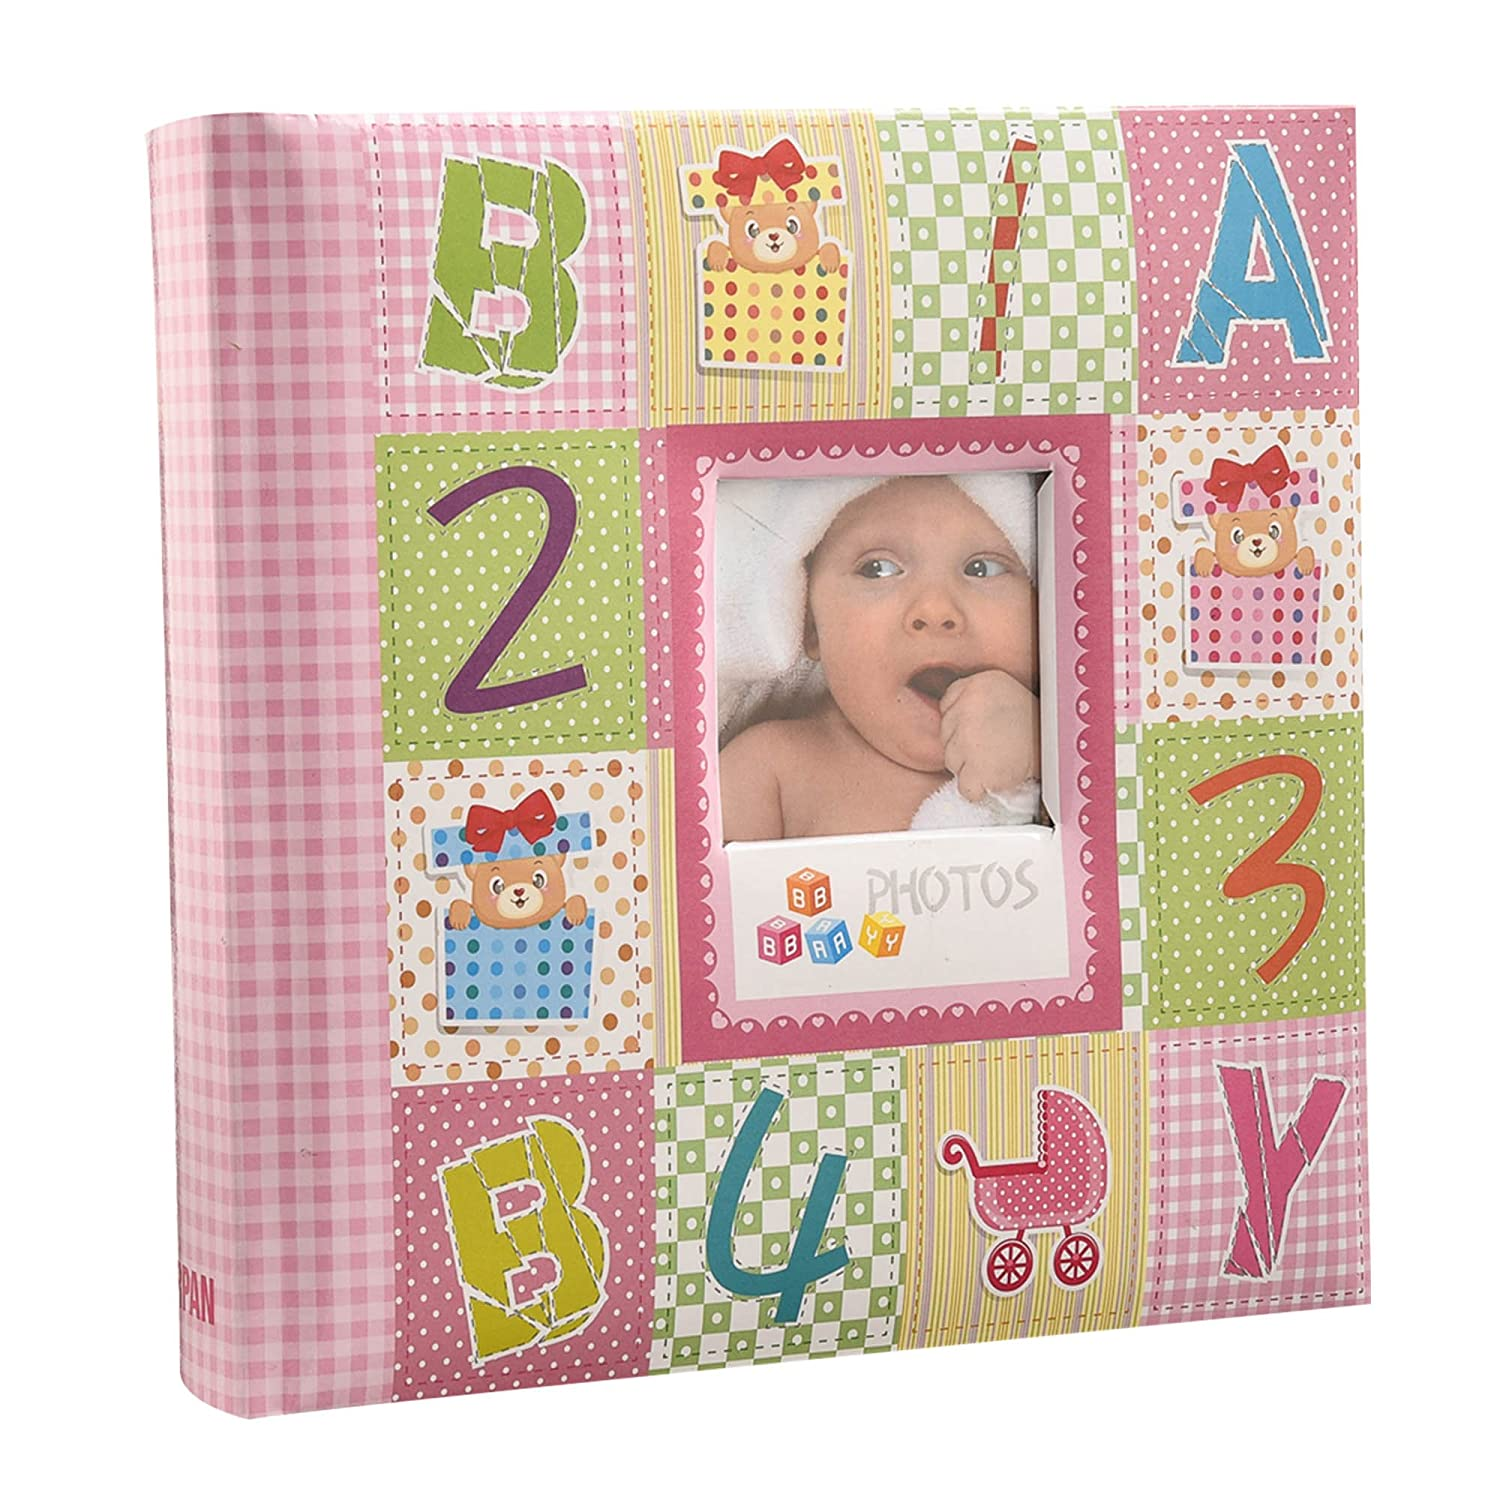 Arpan 10 x 15 cm Baby Photo Album 200 Hold Slip In case Memo Album - Alphabet by ARPAN CLARIS CL-CC200